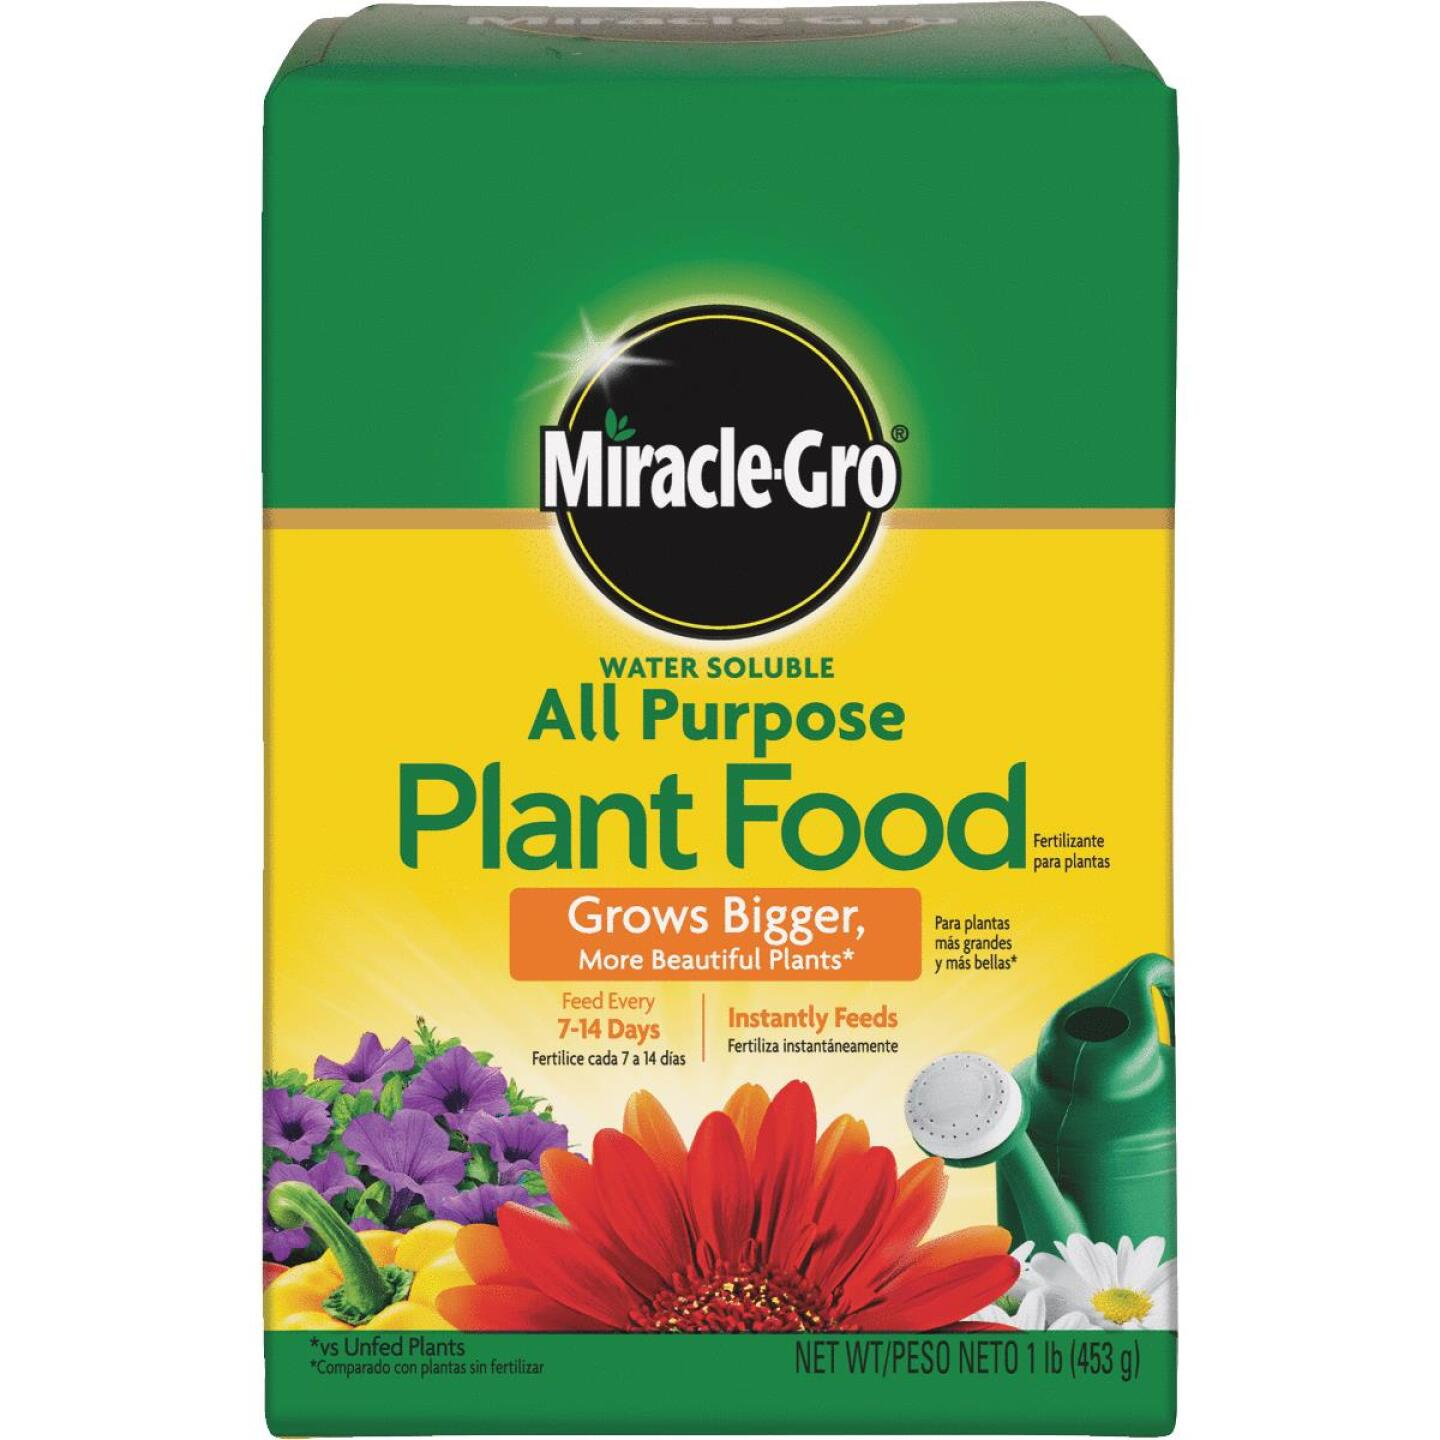 Miracle-Gro 1 Lb. 24-8-16 All Purpose Dry Plant Food Image 1